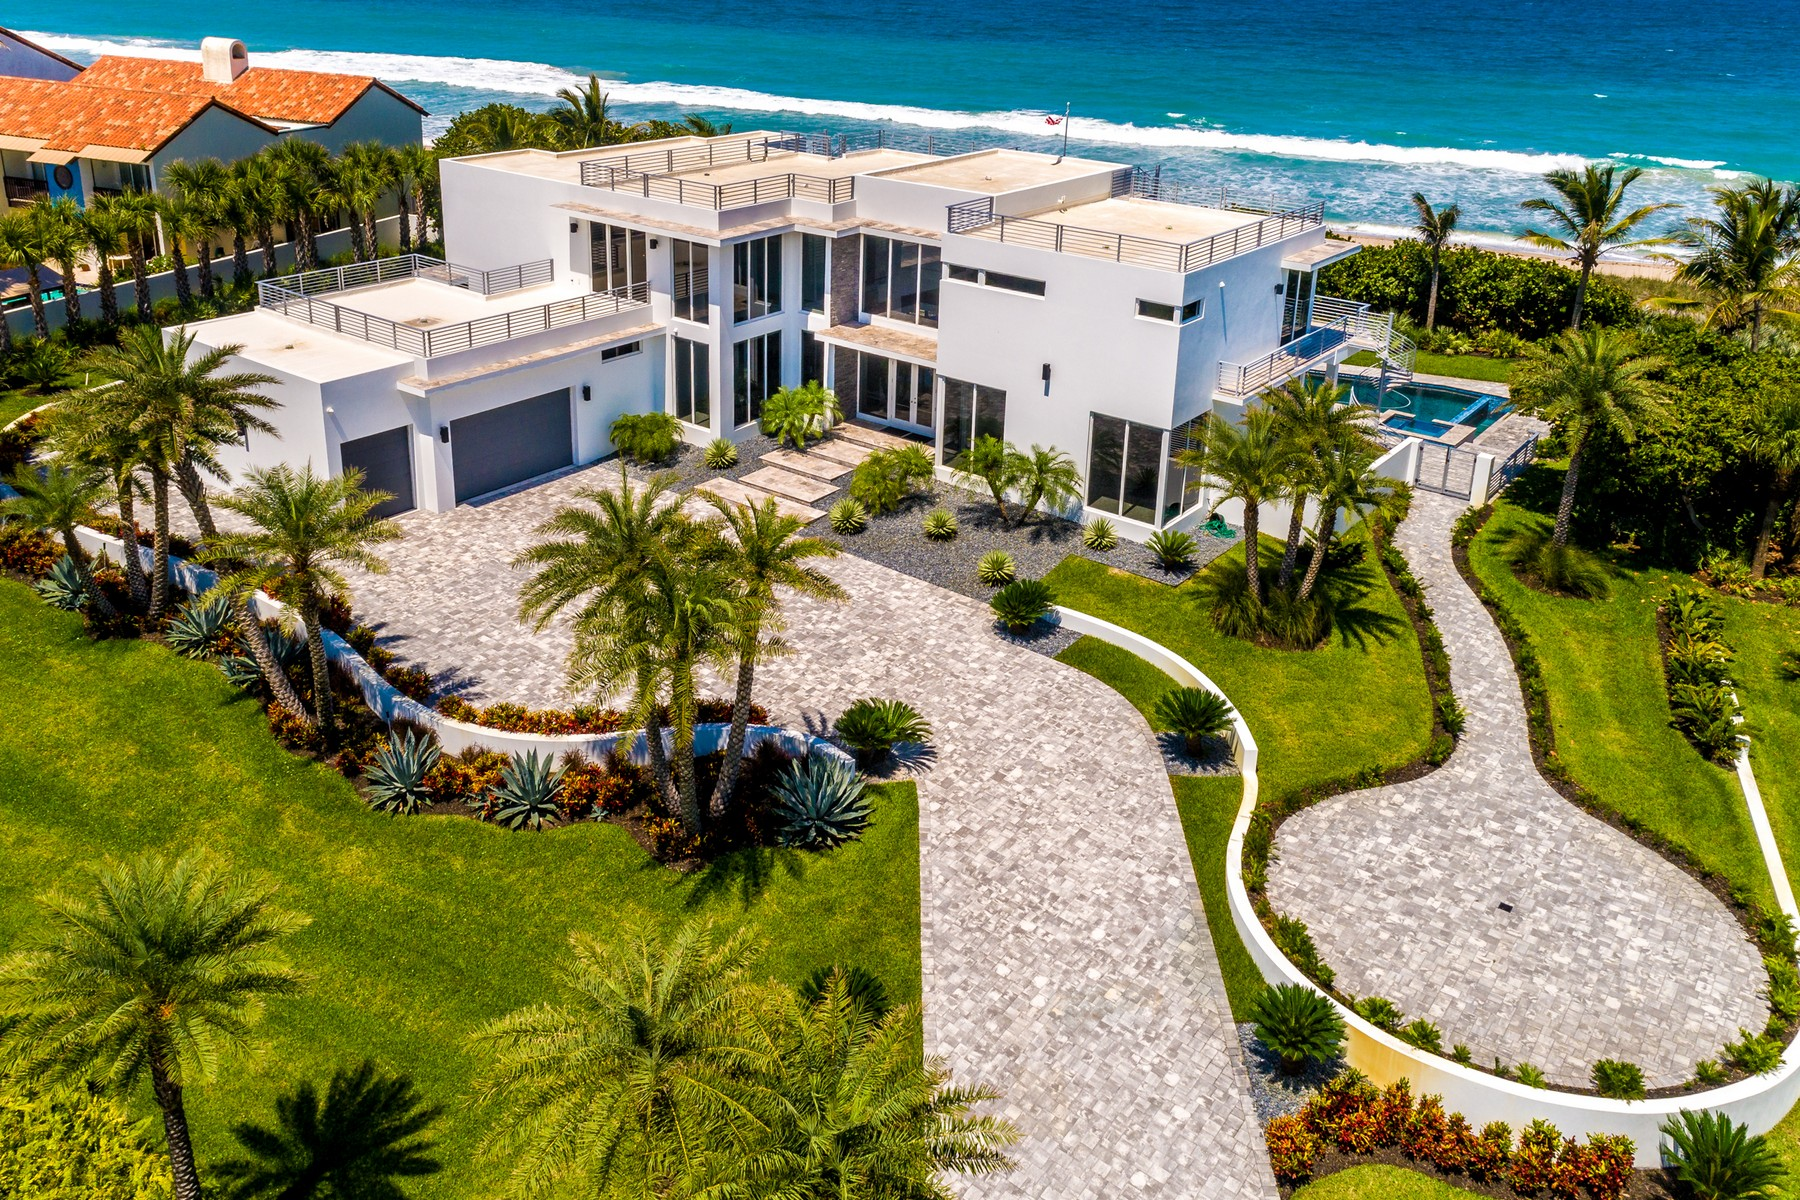 Single Family Homes için Satış at Modern Masterpiece with Captivating Panoramic Ocean and River Views 9445 Highway A1A Melbourne Beach, Florida 32951 Amerika Birleşik Devletleri